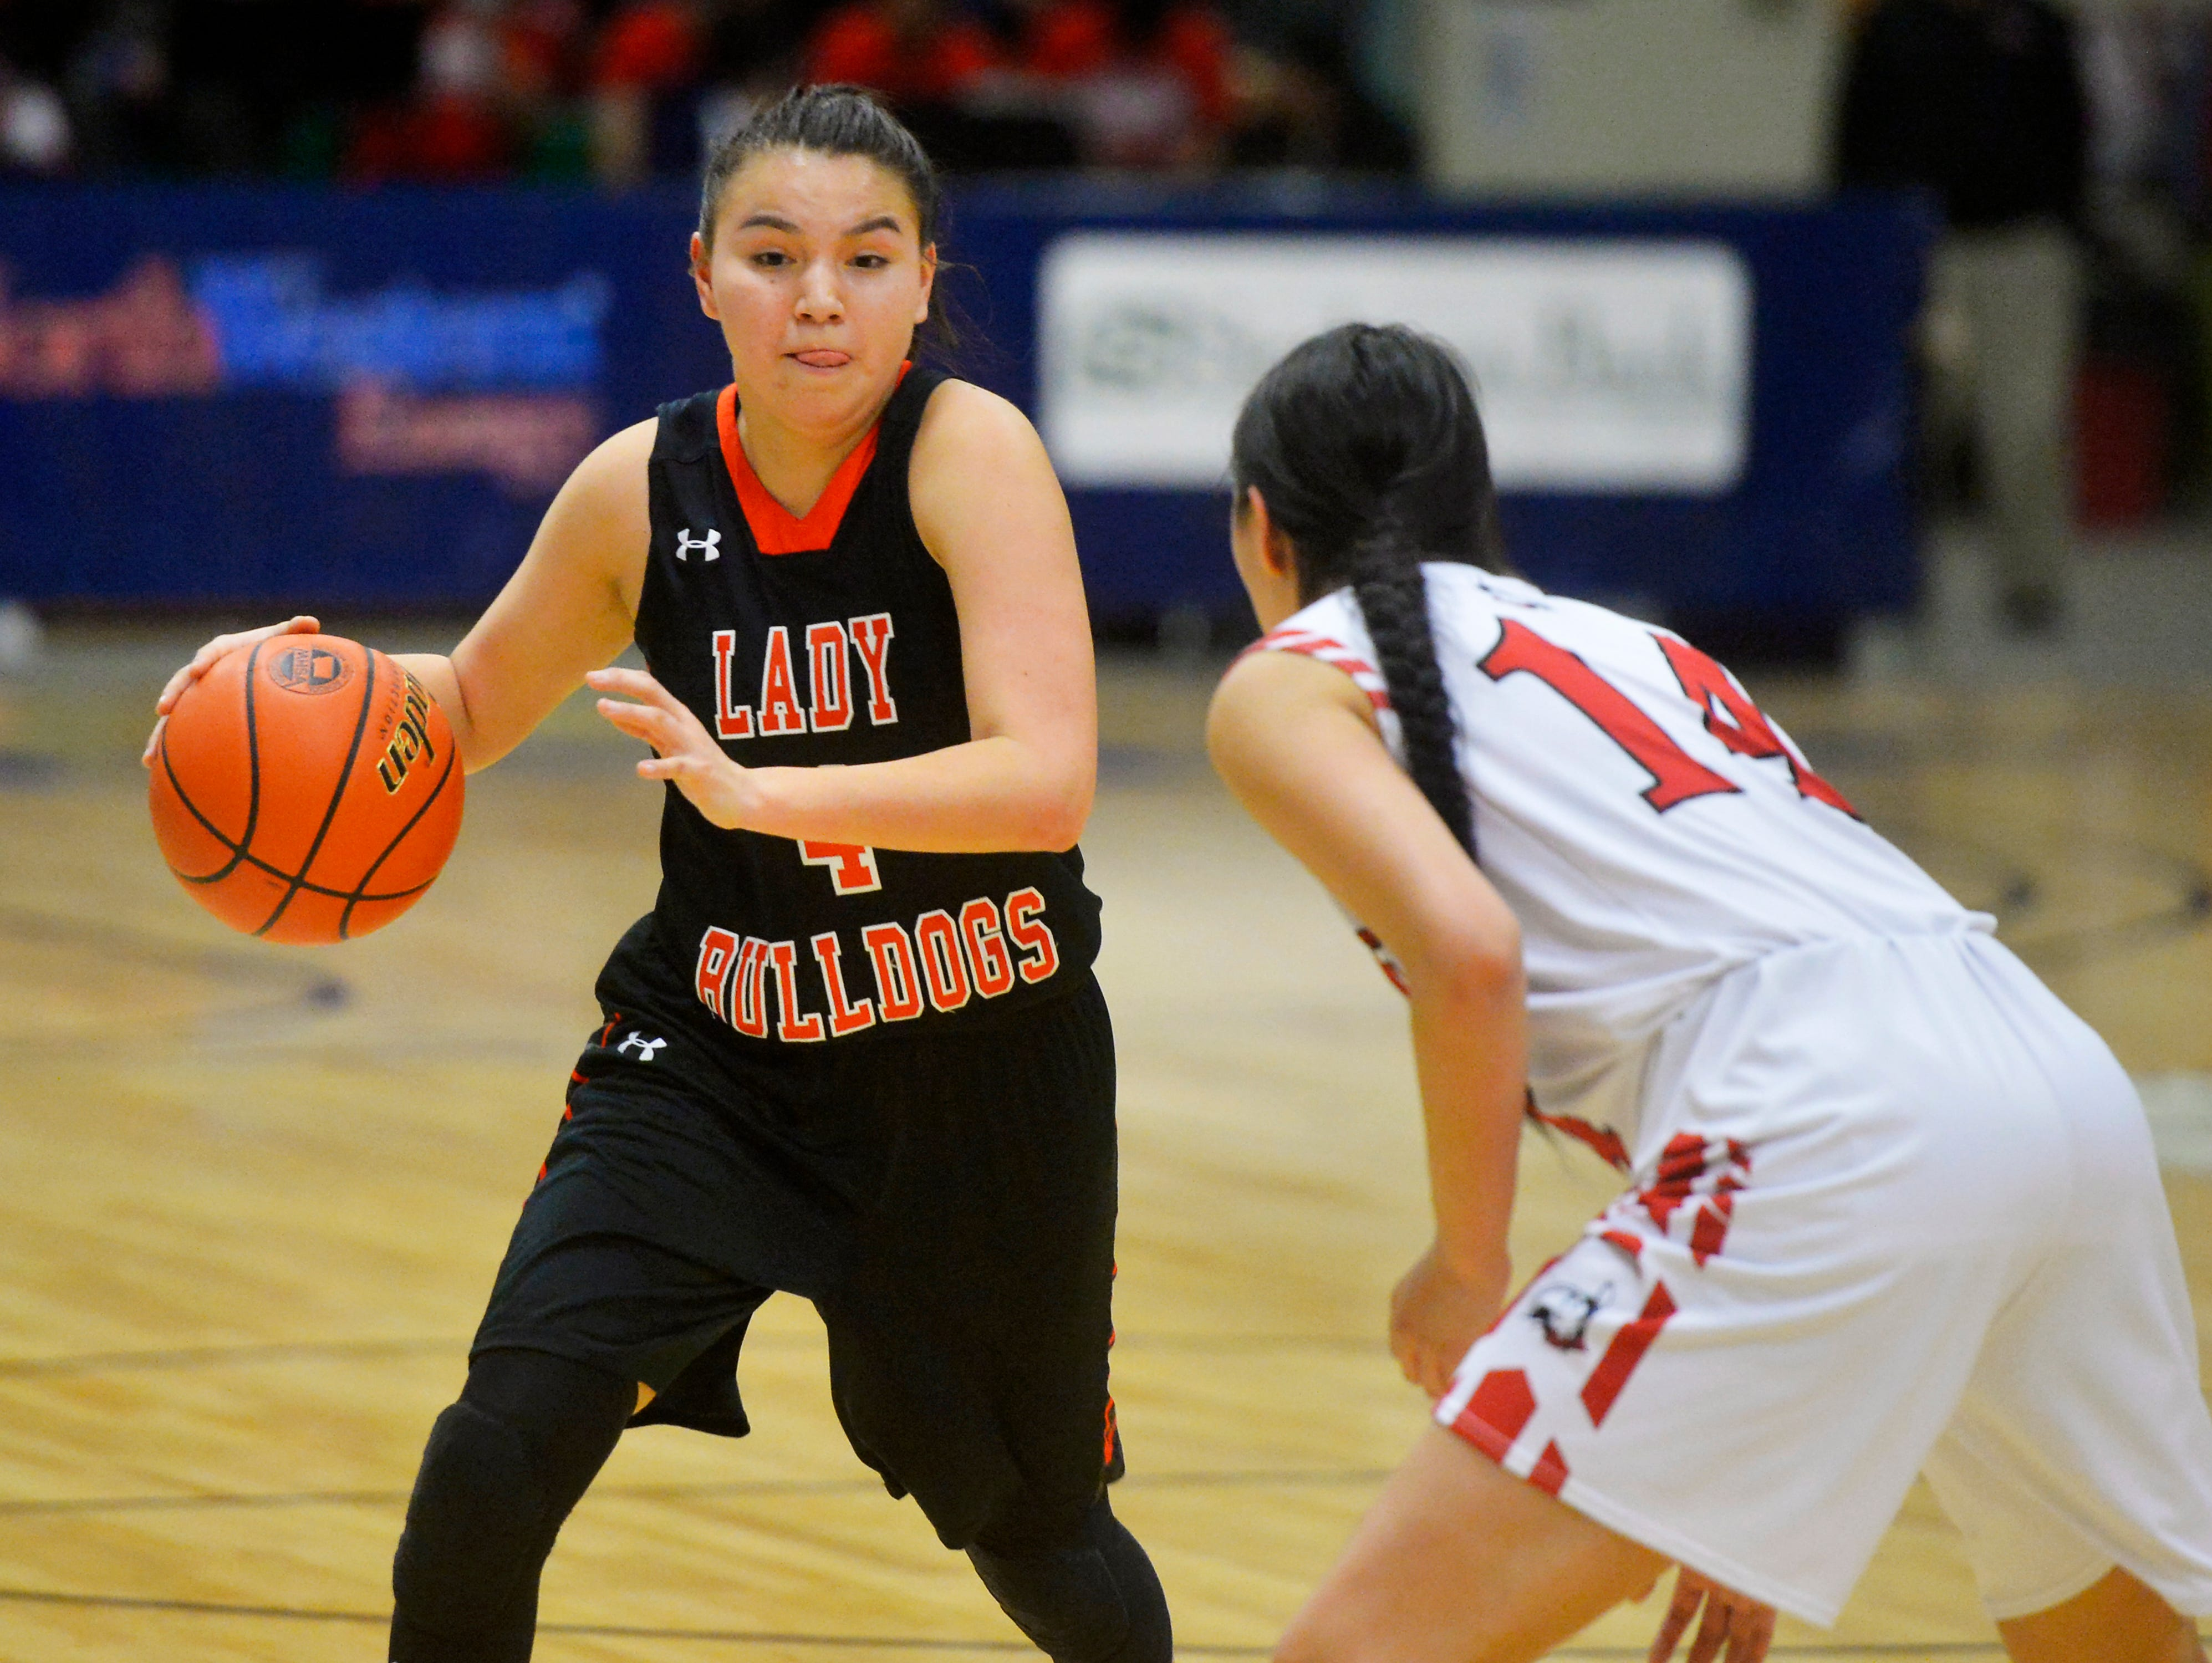 Hardin's Mashaya Alden attempts to dribble passed Browning's Kelsey Mad Plume during the Class A State Basketball Tournament in the Four Seasons Arena, Thursday.